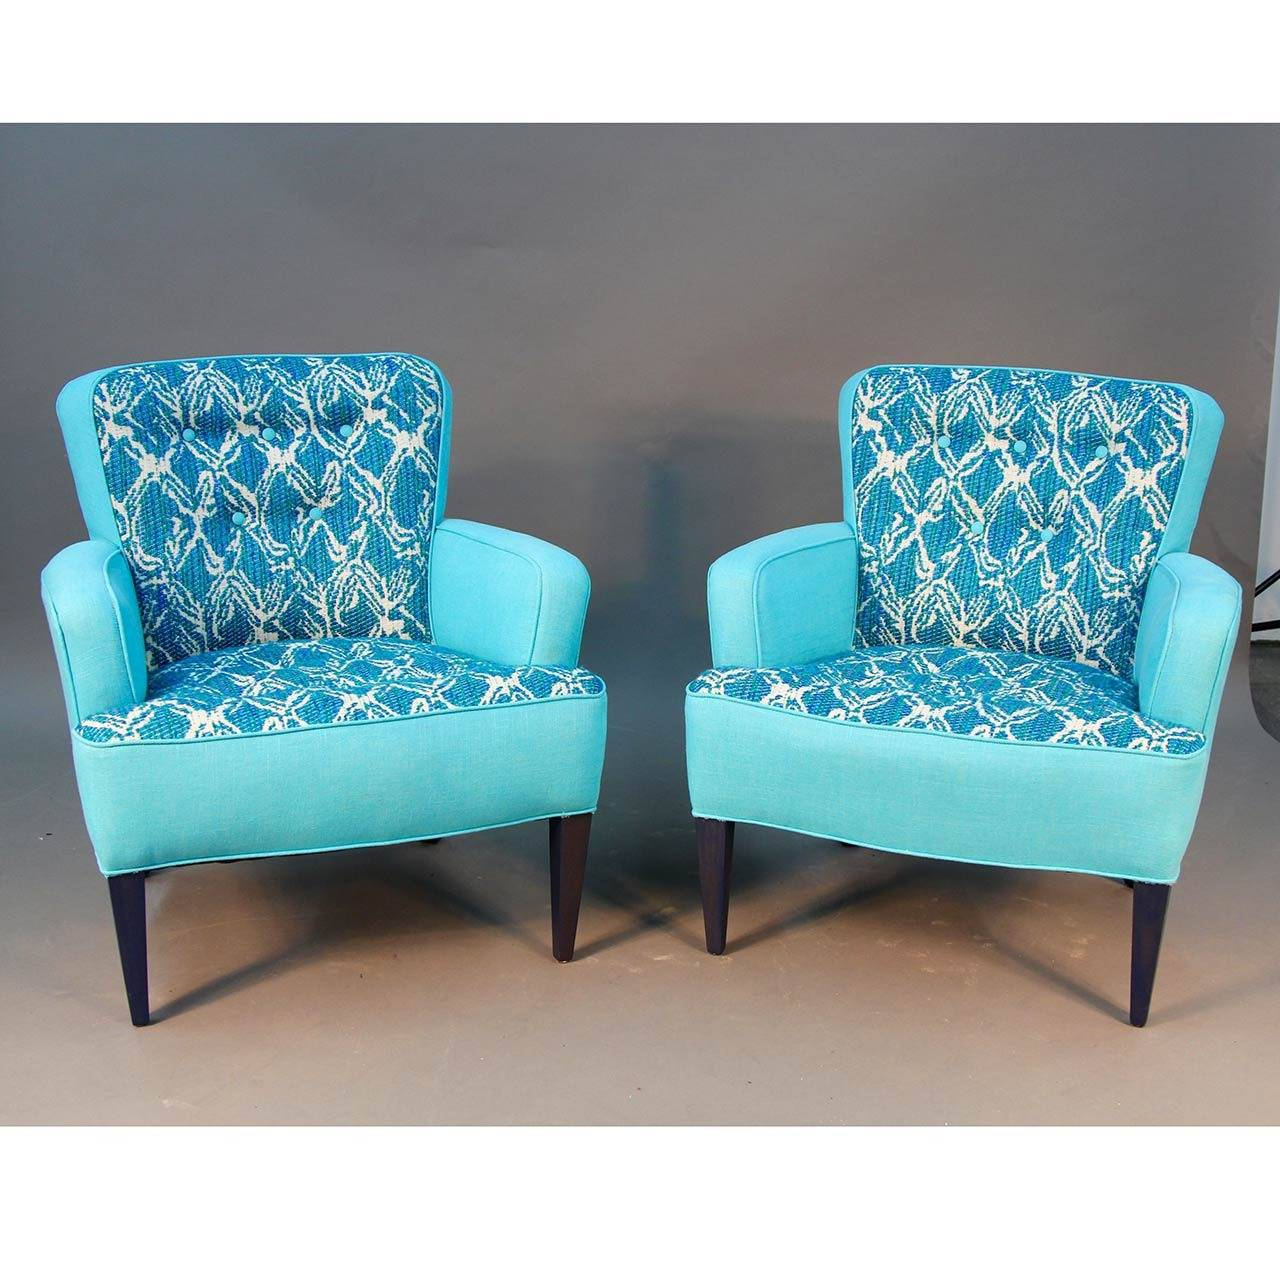 Turquoise chairs 28 images aeon furniture upholstered lounge chair in turquoise ae0358 b9 - Turquoise upholstered dining chair ...